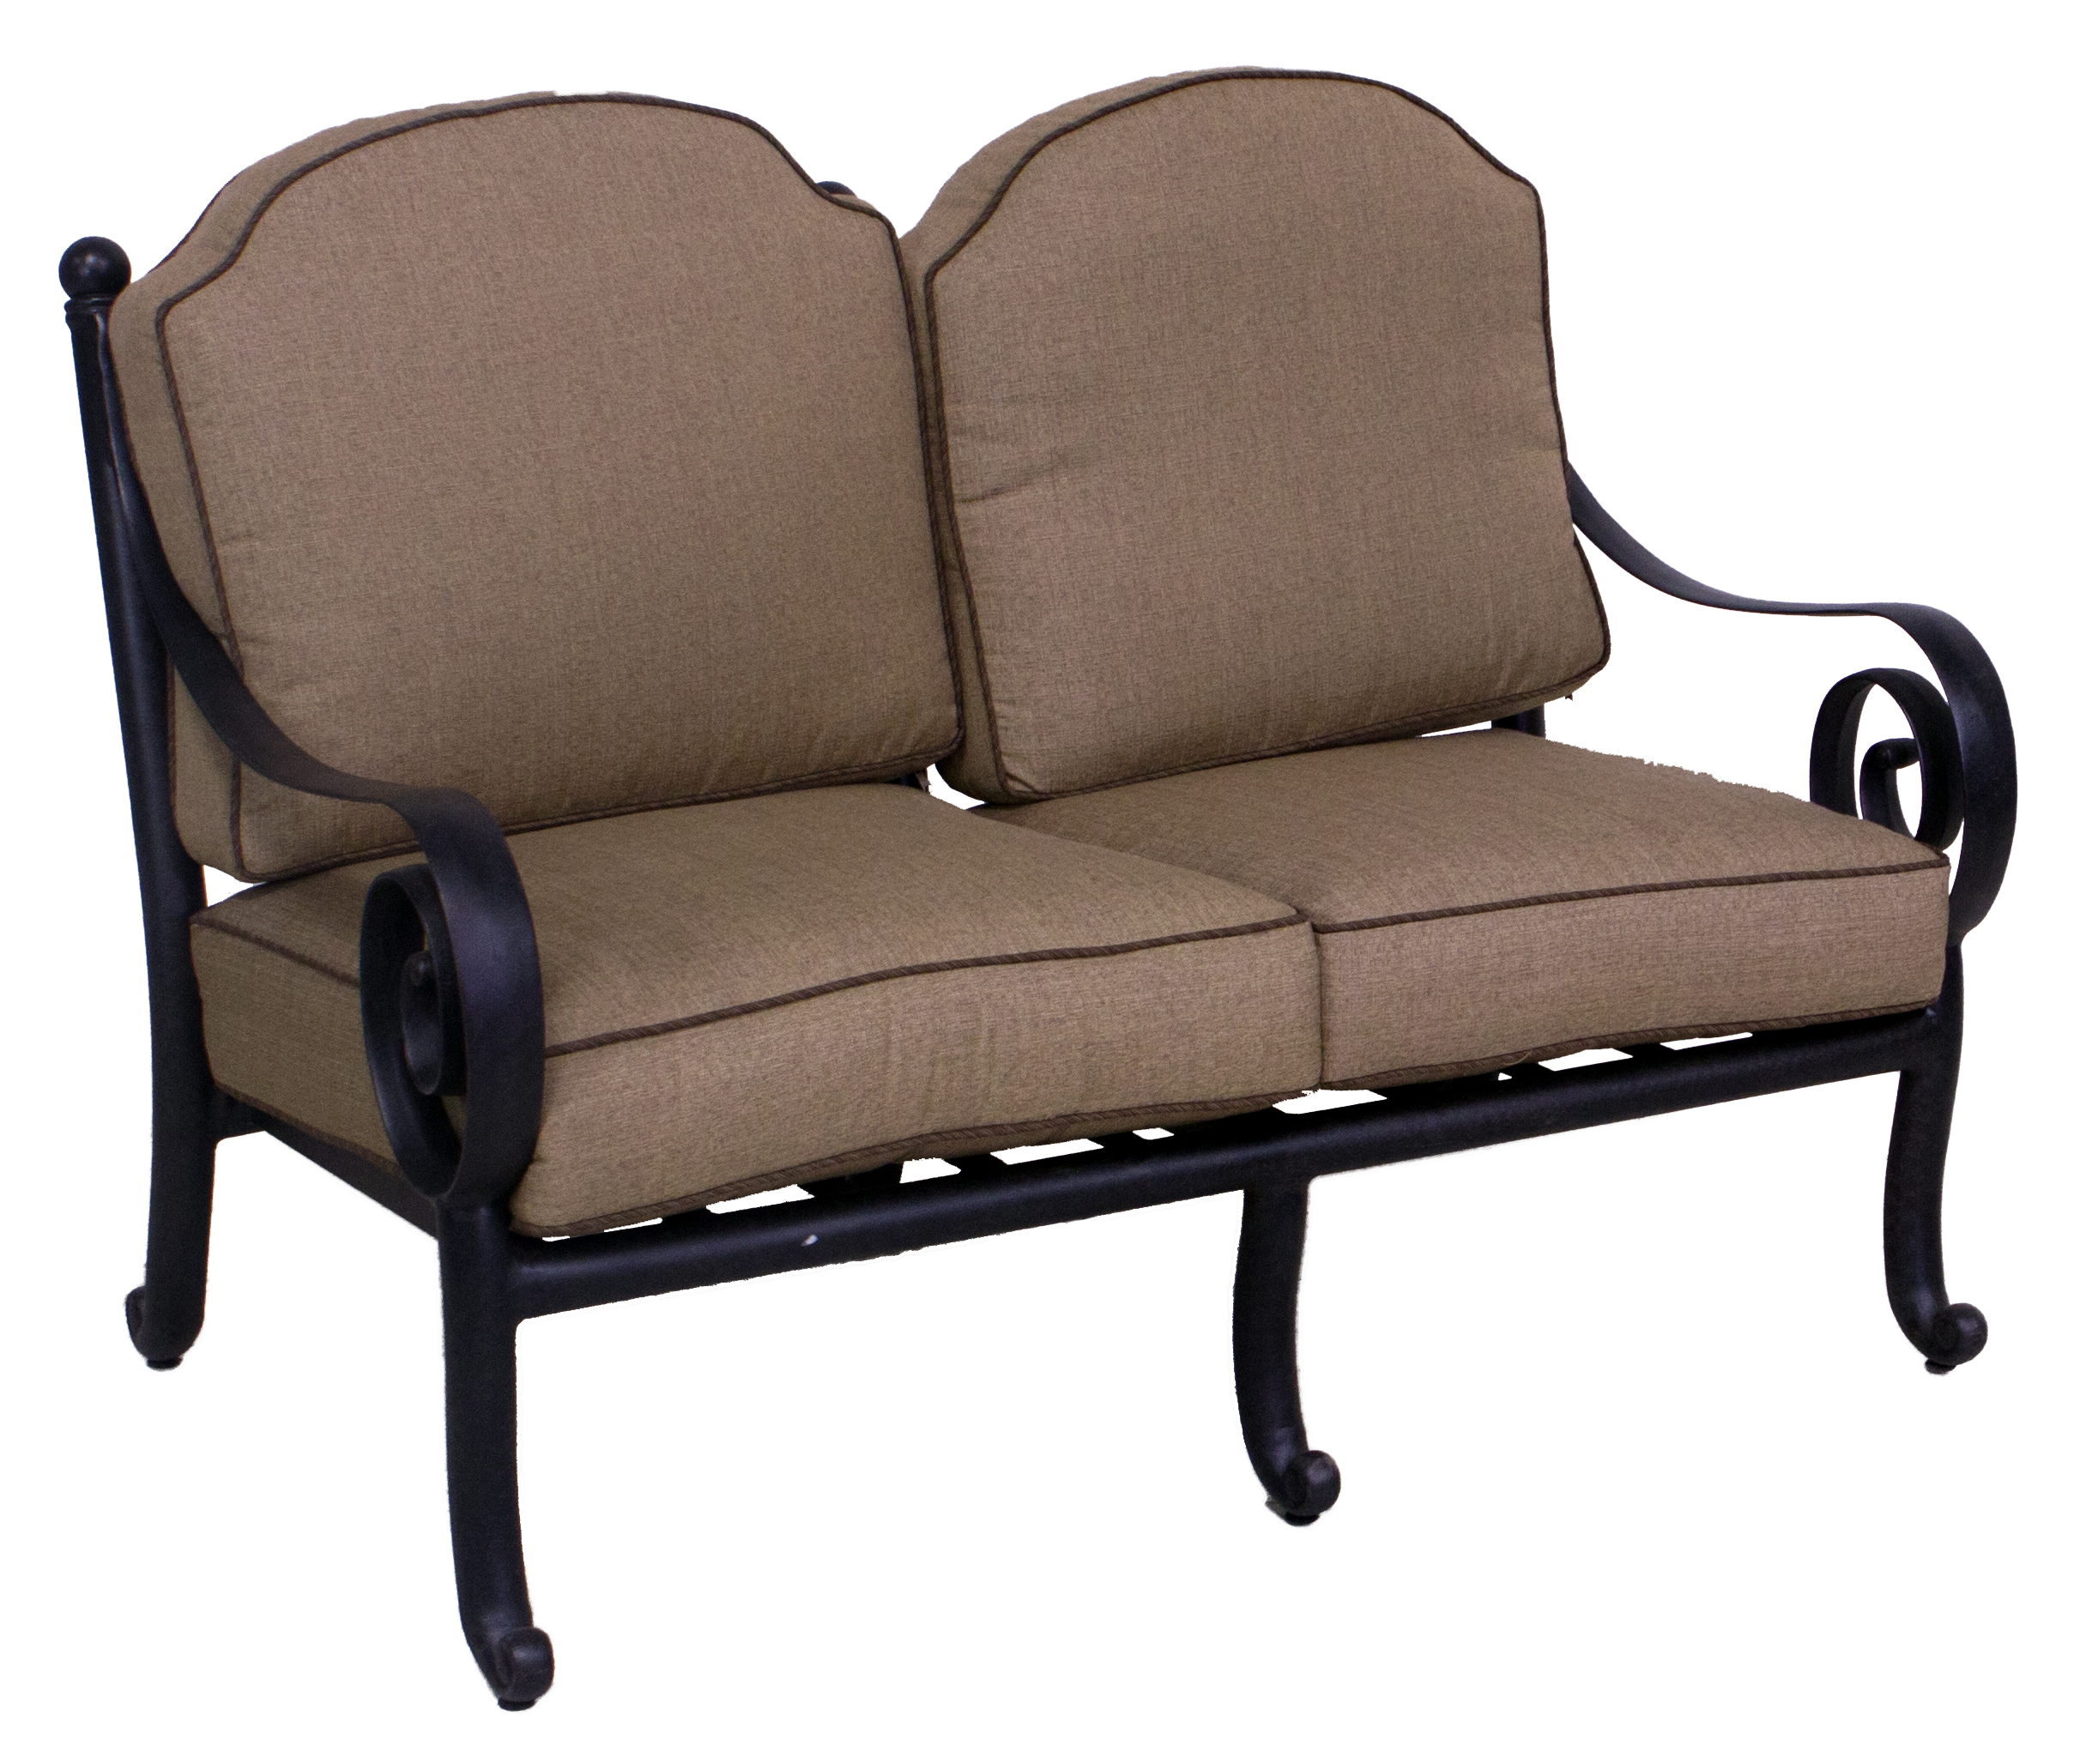 Best of backyard wynn collection loveseat sofa club for Sofa coffee table